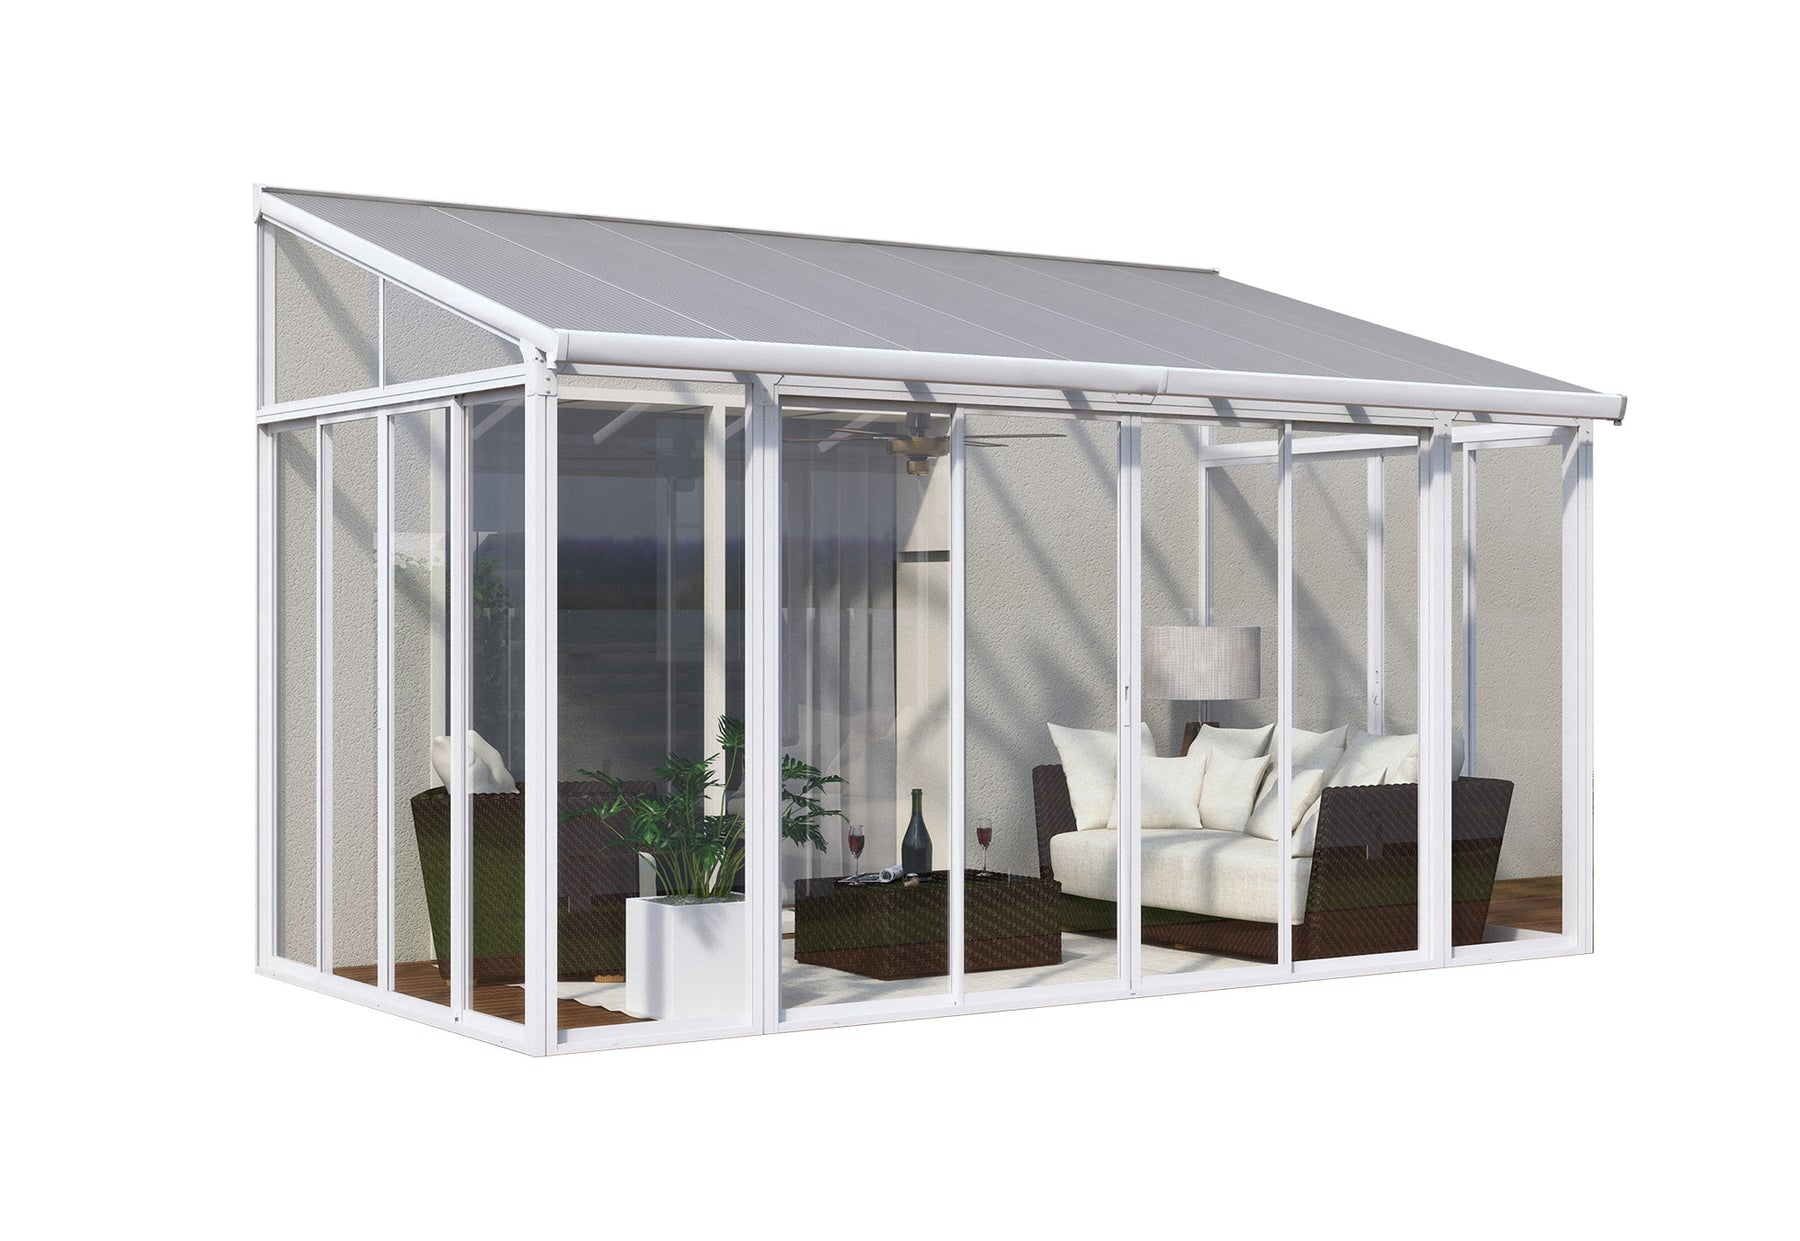 Palram SanRemo Add-a-Room, Patio Enclosure - White Size - 10' x 14':Tuff Nest